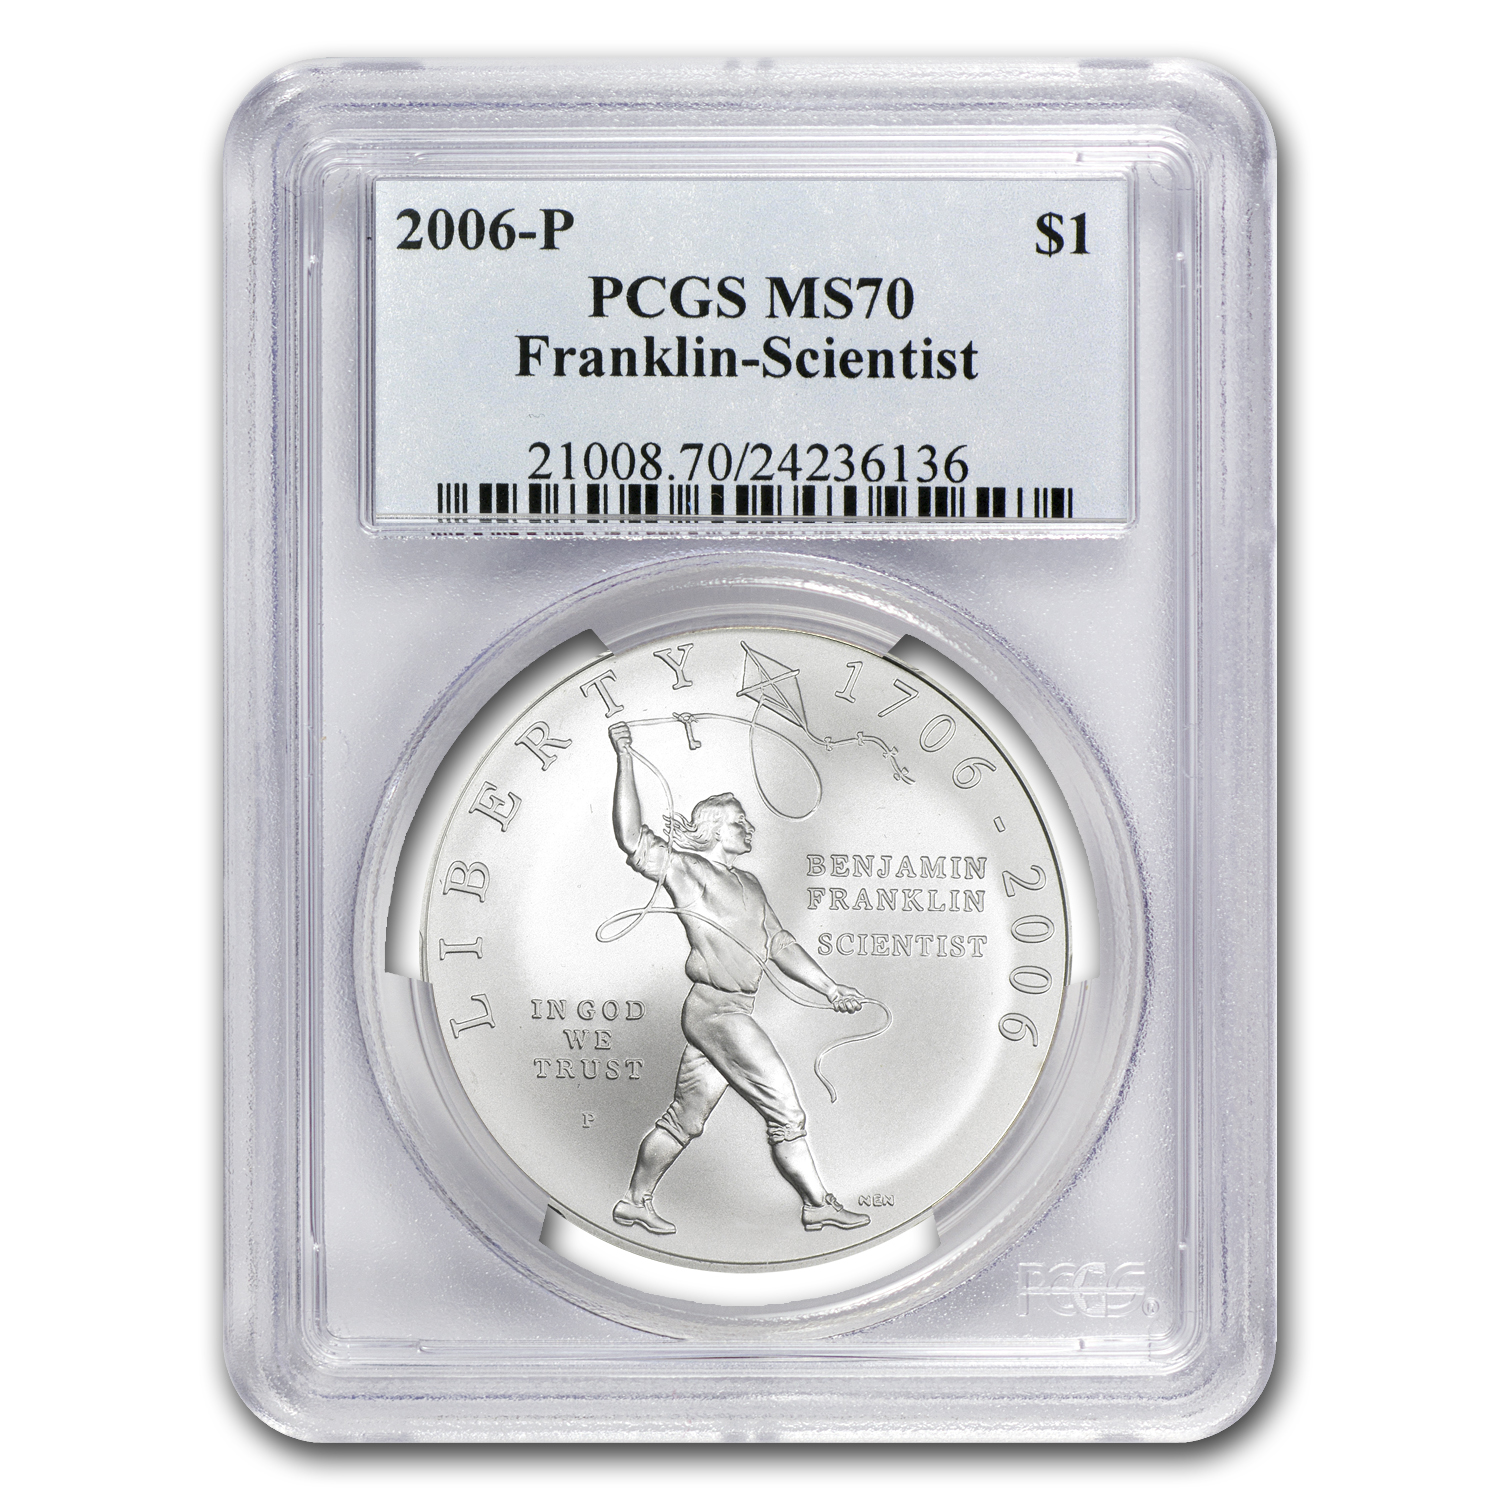 2006-P Ben Franklin Scientist $1 Silver Commem MS-70 PCGS